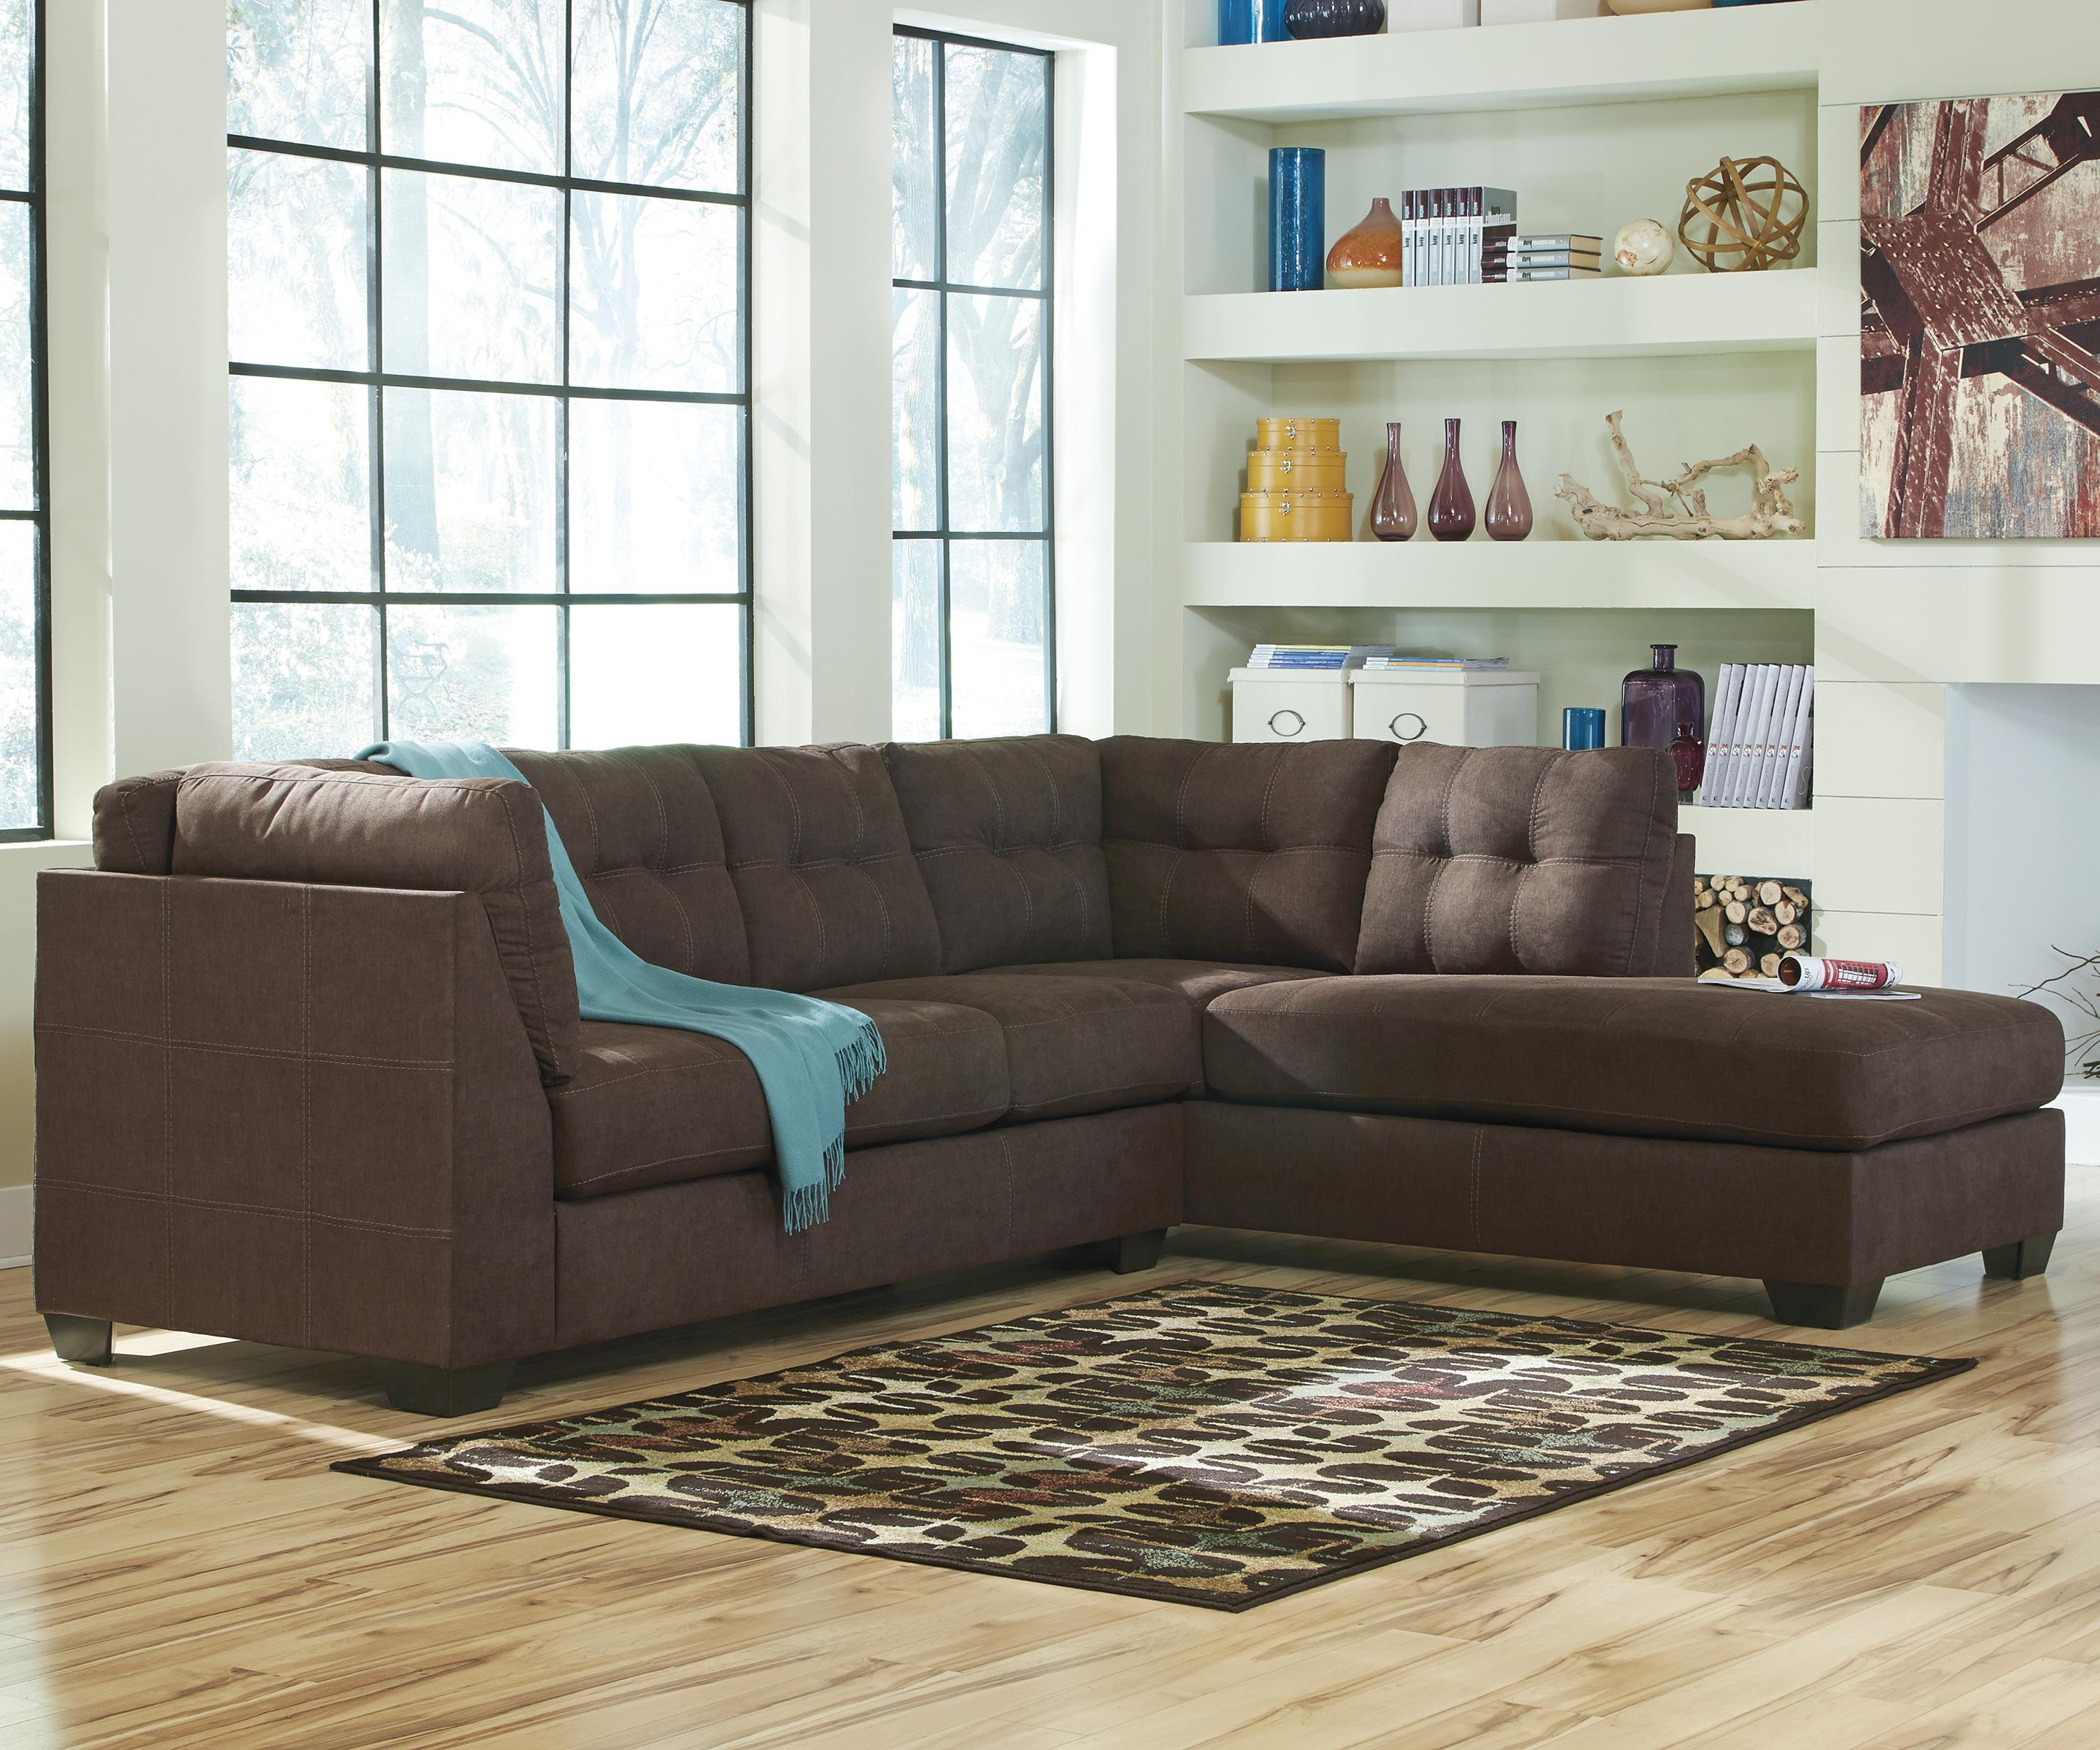 Couch Sectional | Sectional Sleeper Sofa | Sectional Sofas for Sale